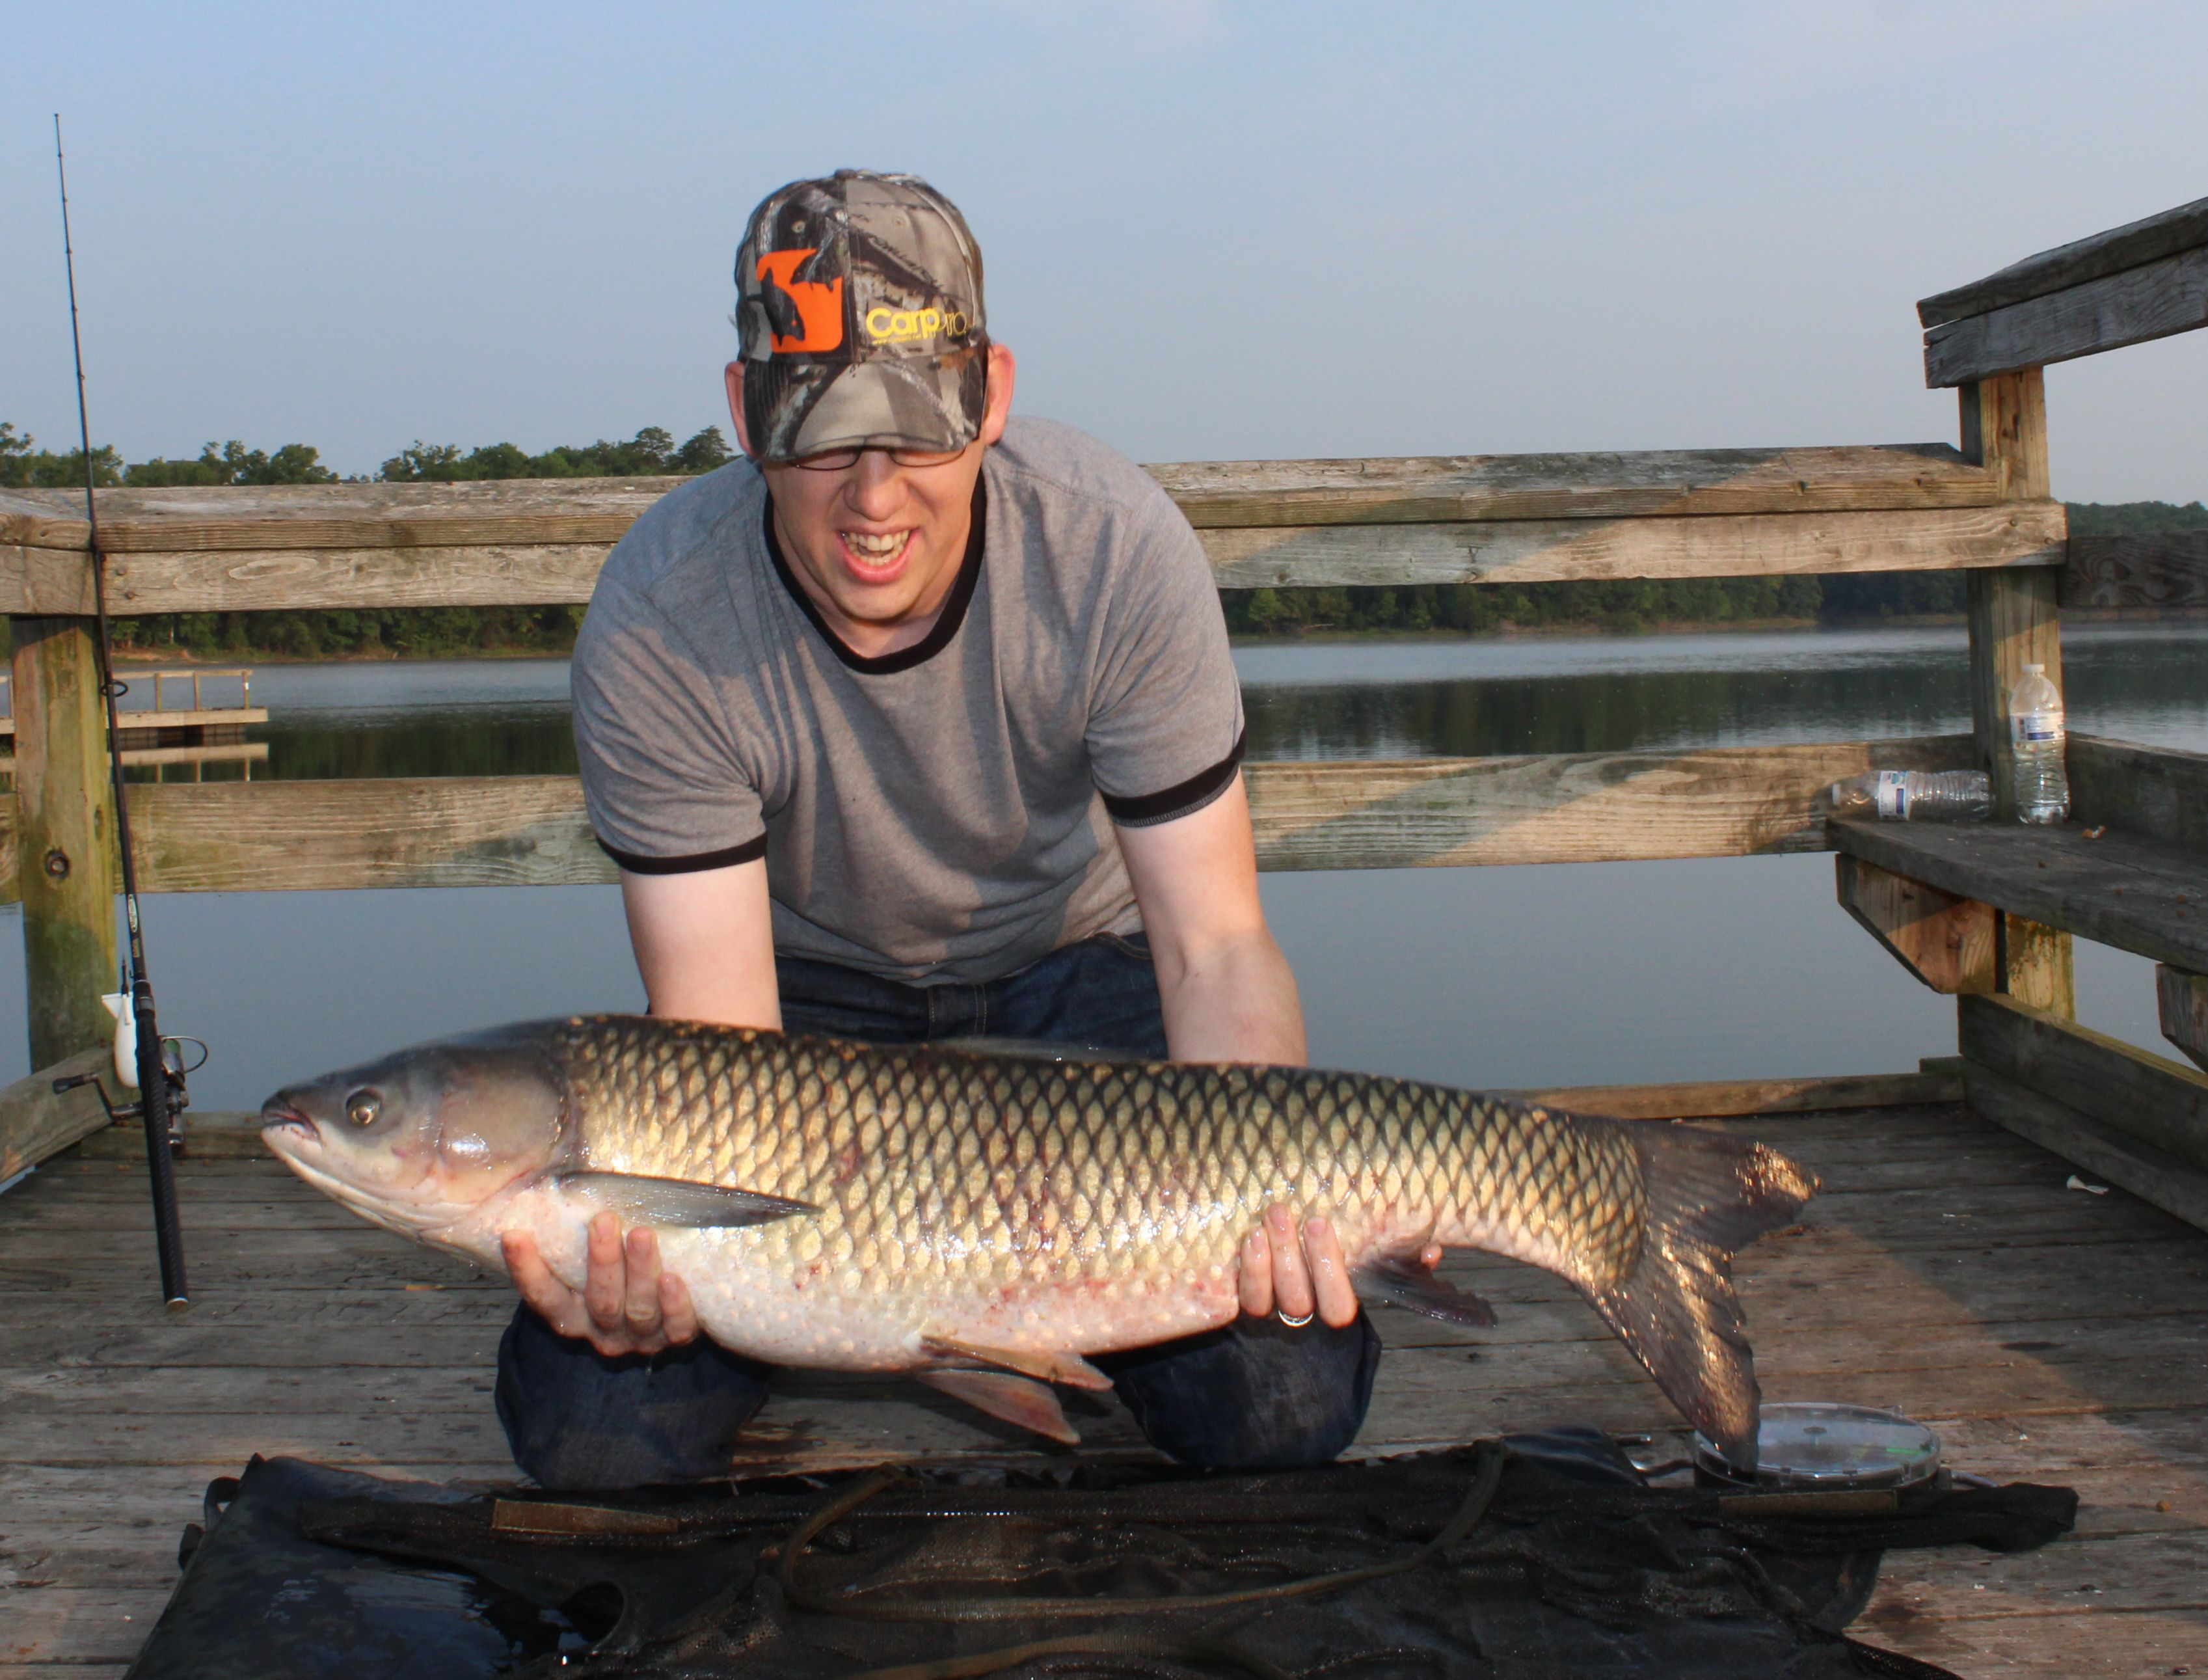 Another Great 29 Lb Grass Carp In Northern Va Just Shy Of The Elusive 30 Lb Mark Caught This Grassie Chumming With Floating Fish Pellets I Put A Couple Of Th